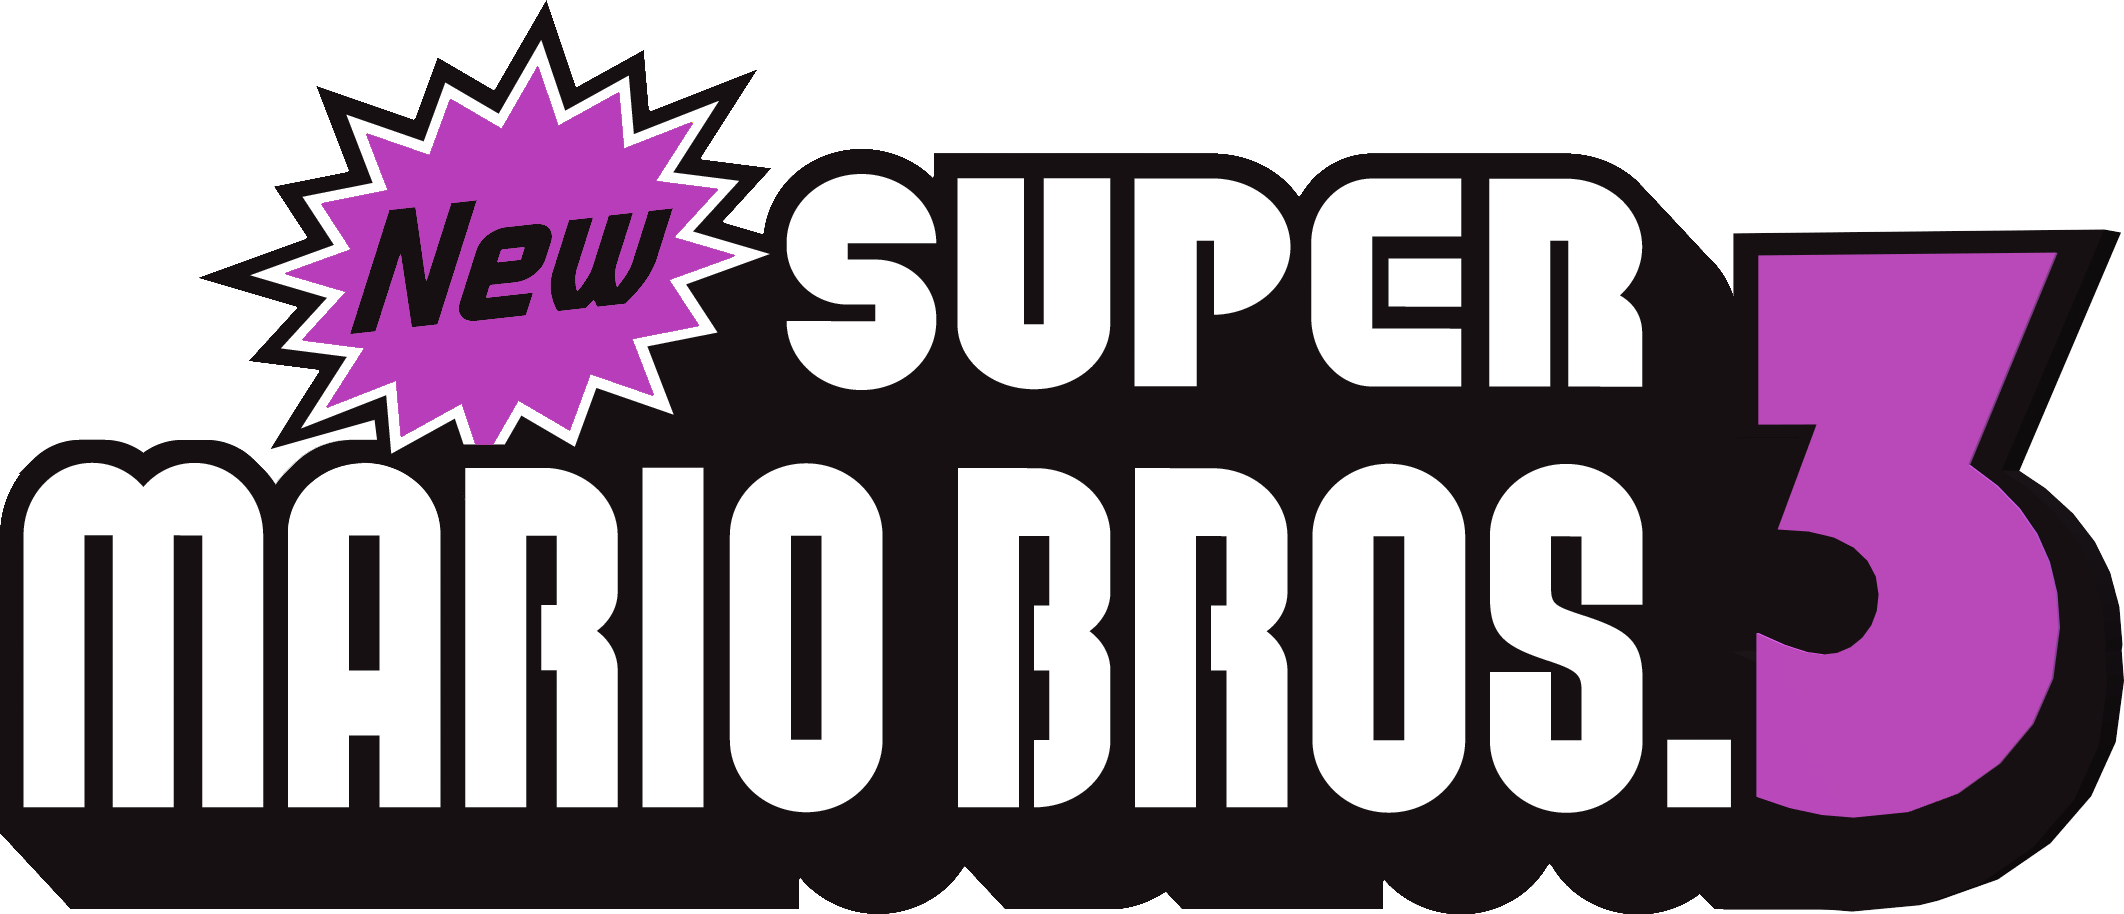 New Super Mario Bros 3 Phase 1 Logo By Mariobrosnet On Deviantart